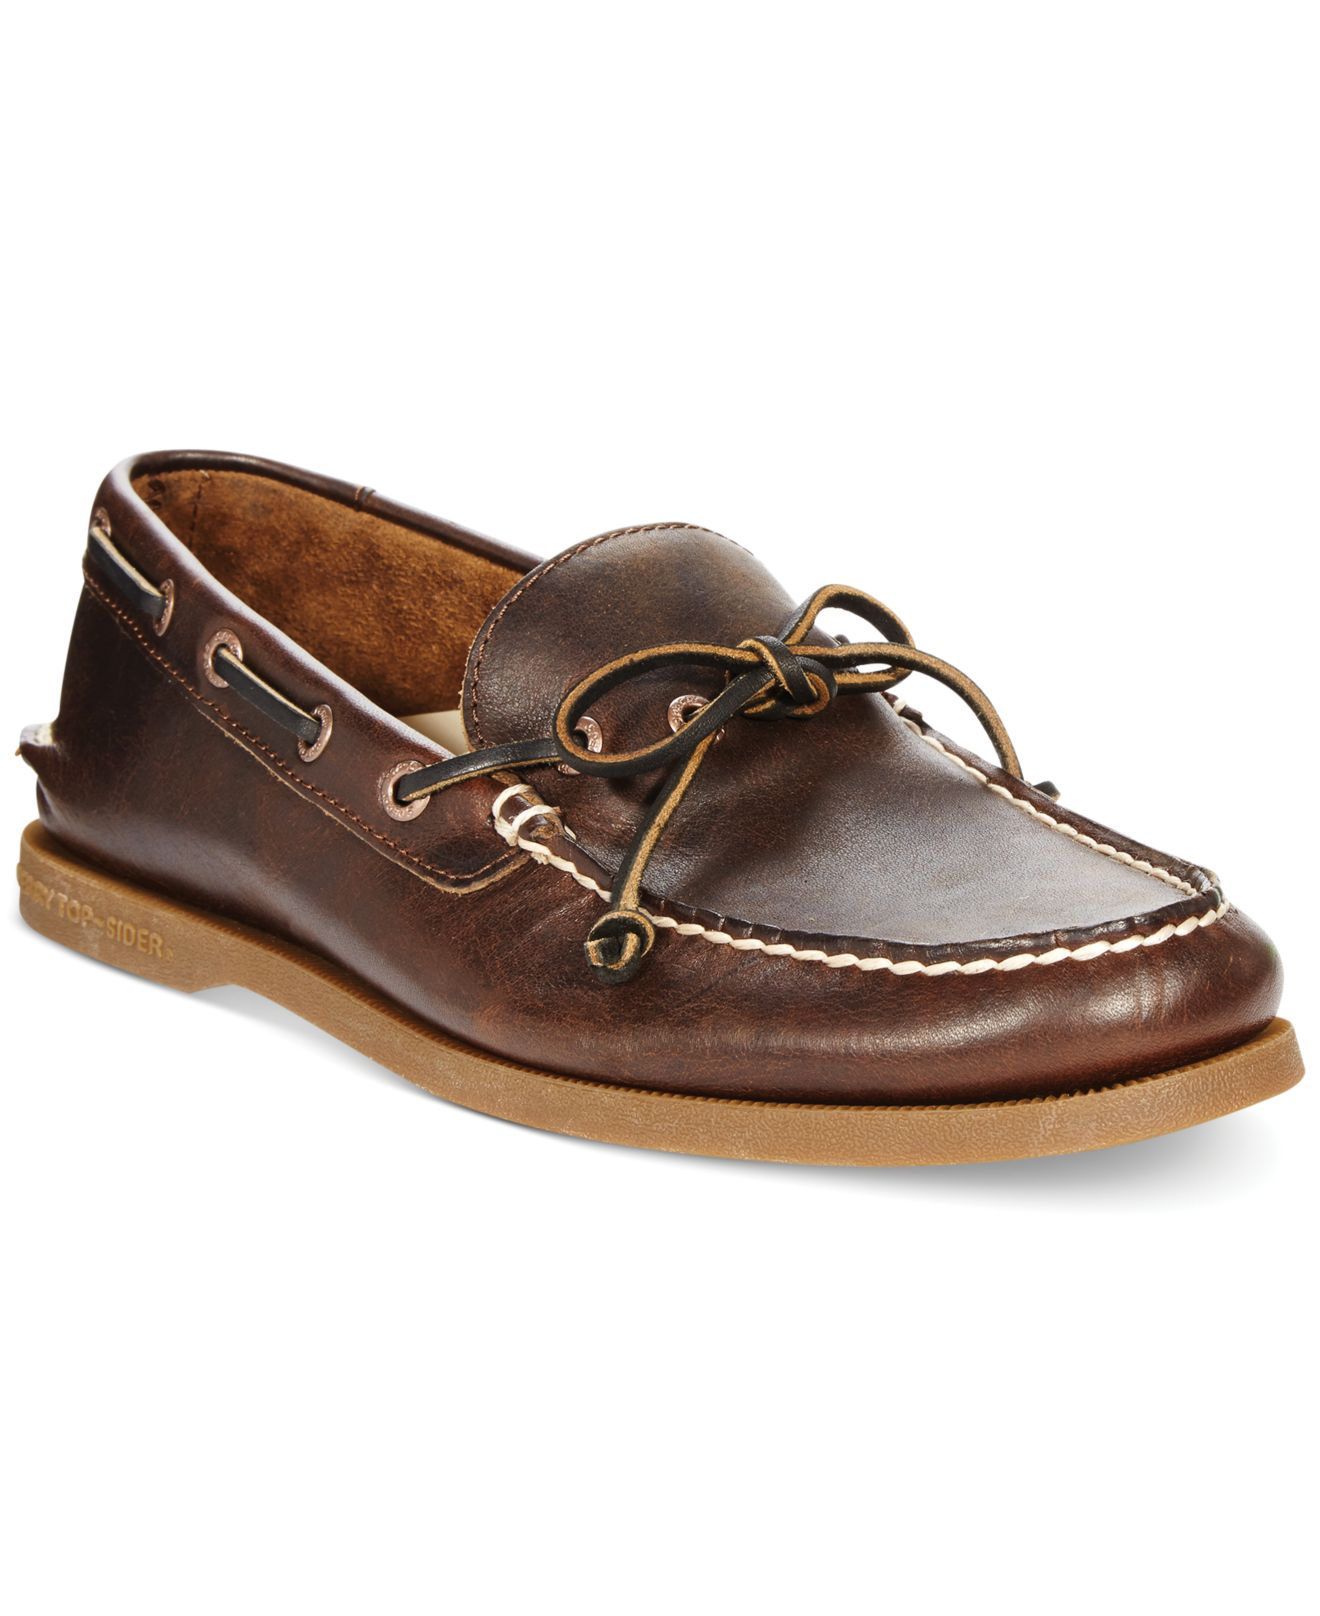 Sperry top-sider Men's A/o 1-eye Leather Boat Shoes in Brown for ...